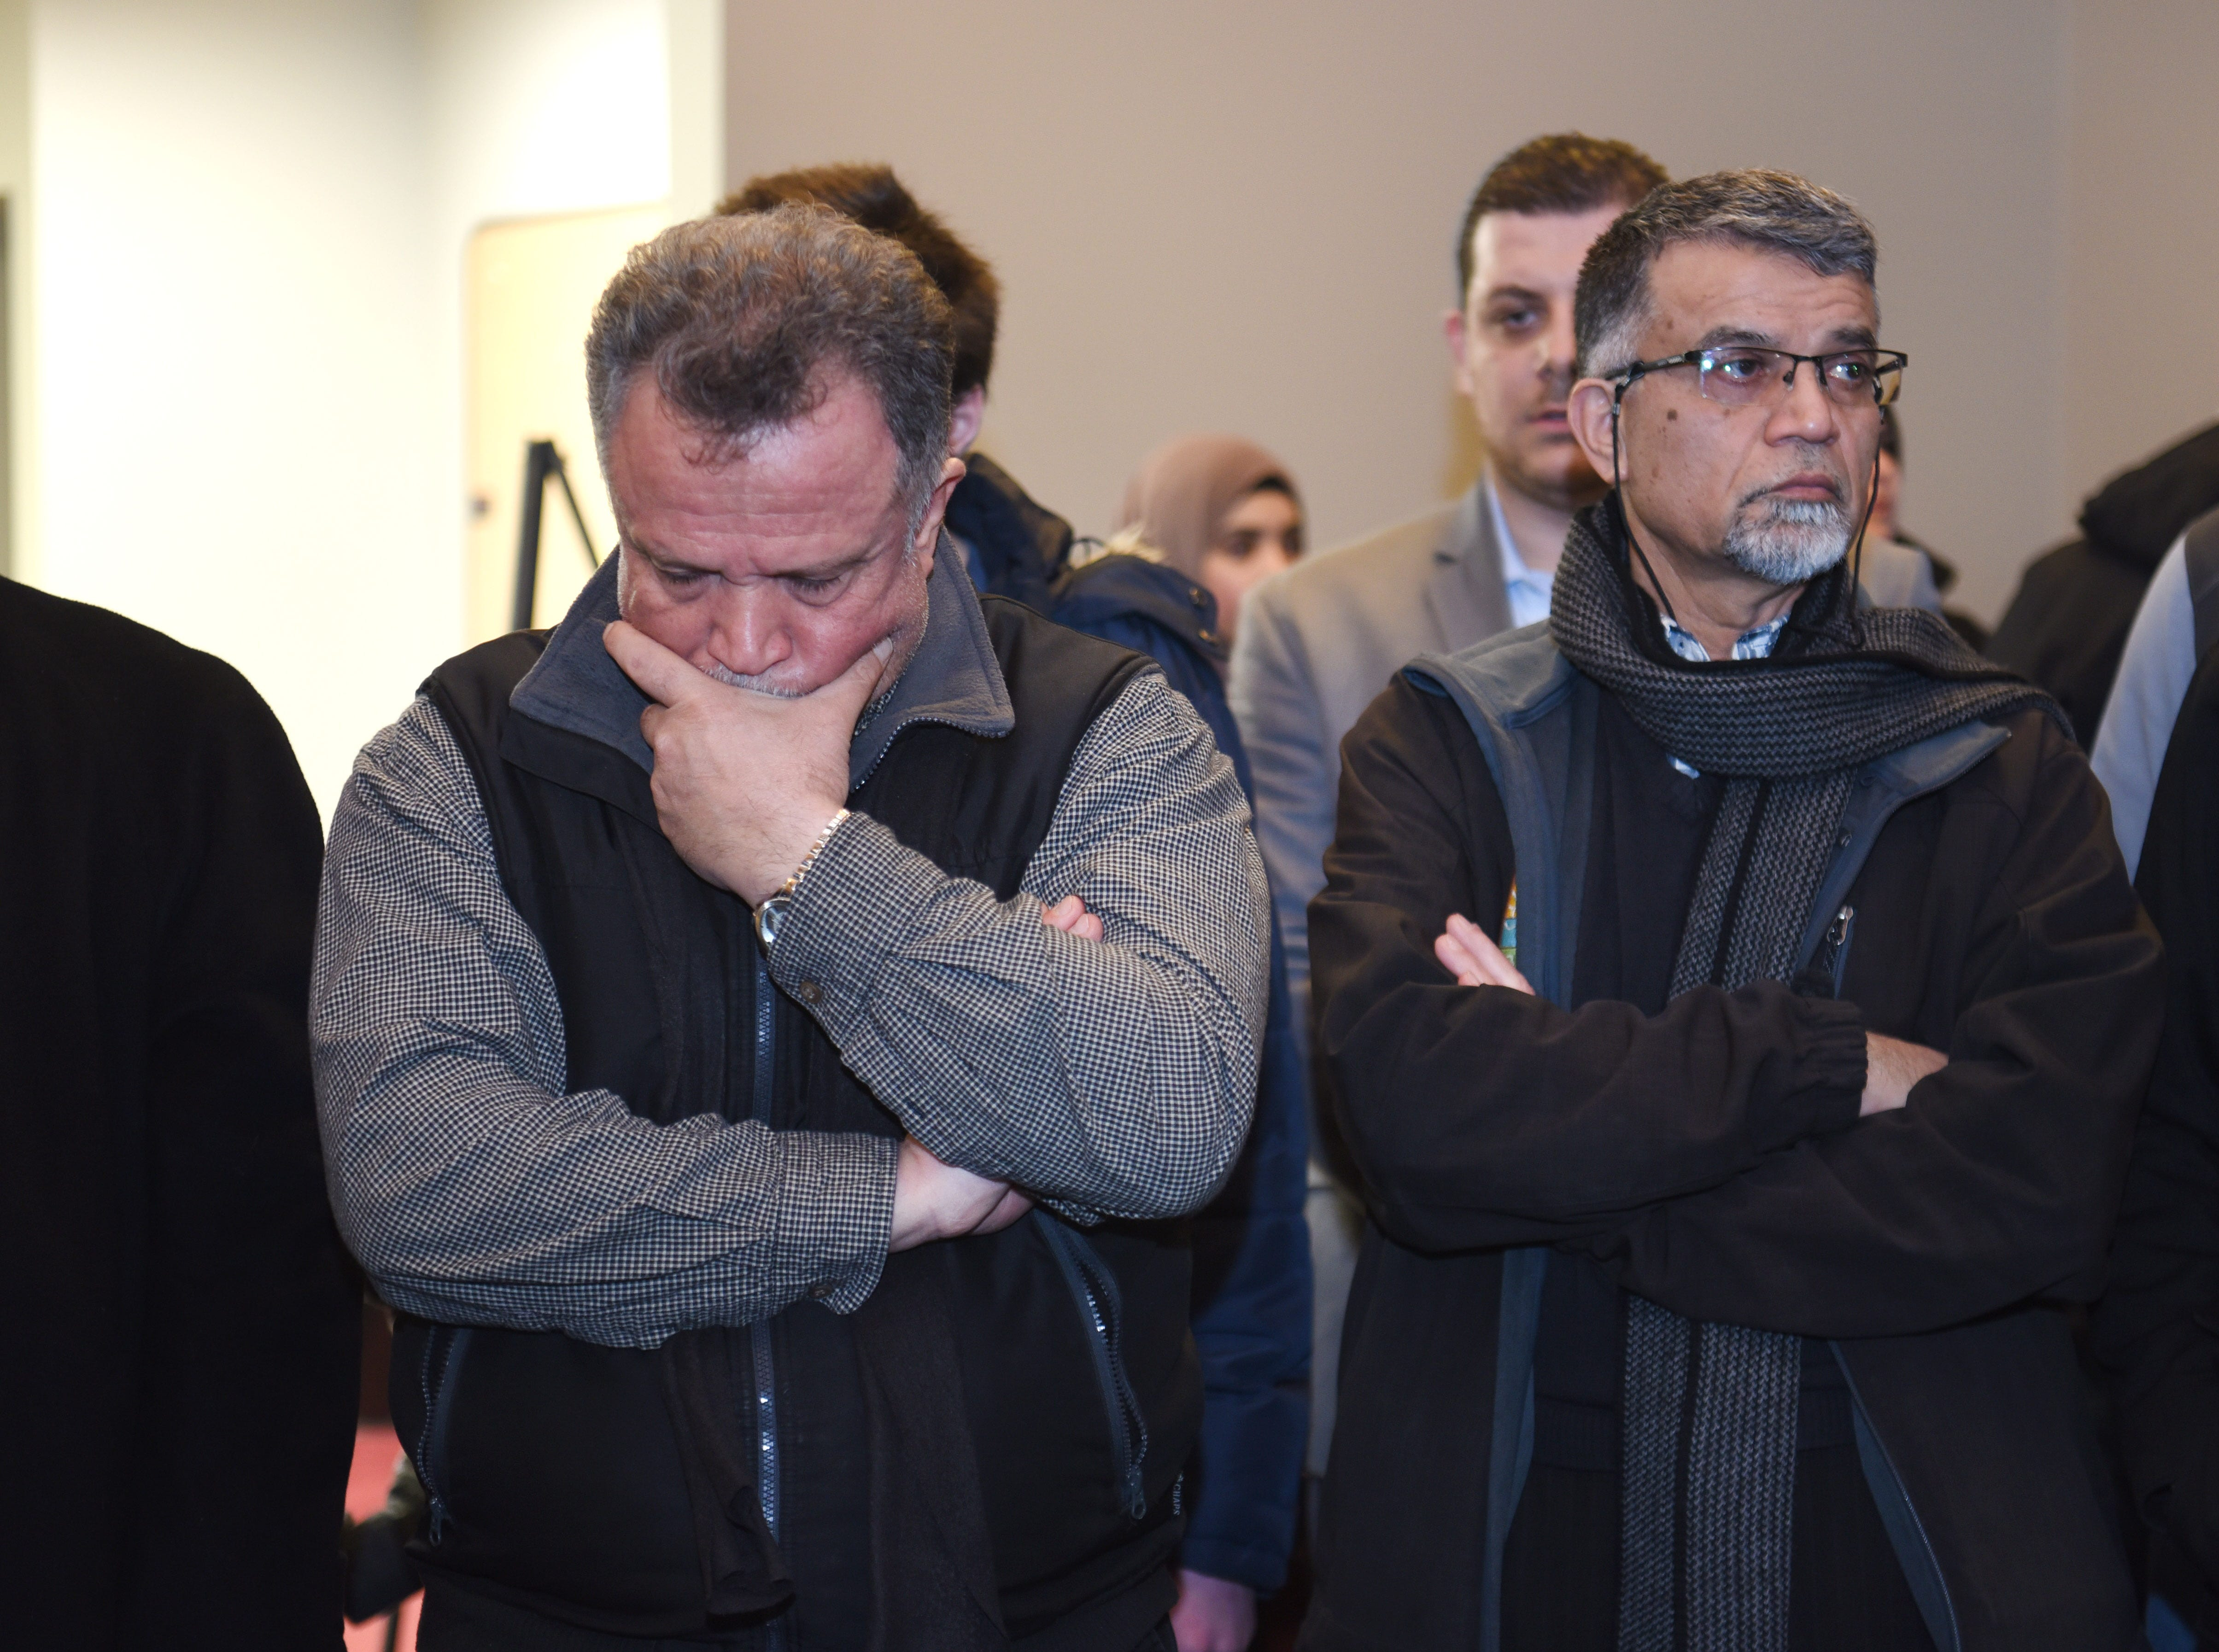 A member of the Islamic Institute of America grips his face as local Muslims pray during a  remembrance on Friday, March 15, 2019 for the lives lost in New Zealand.